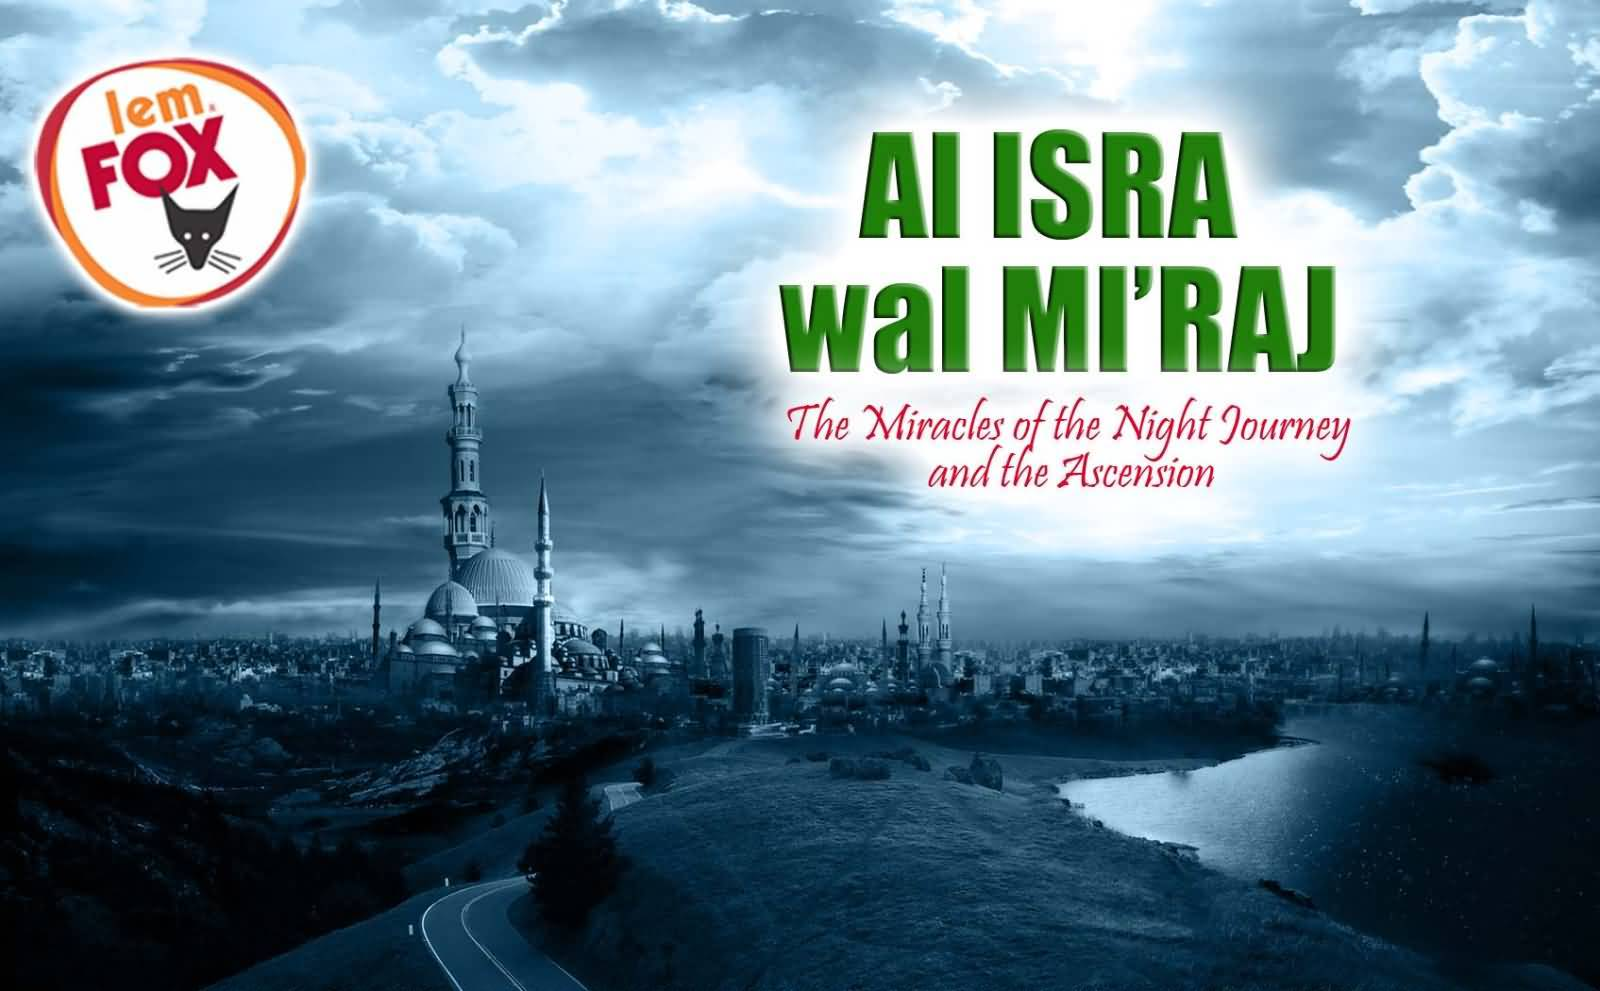 25+ Best Al Isra And Miraj 2017 Wish Pictures of 4 by April